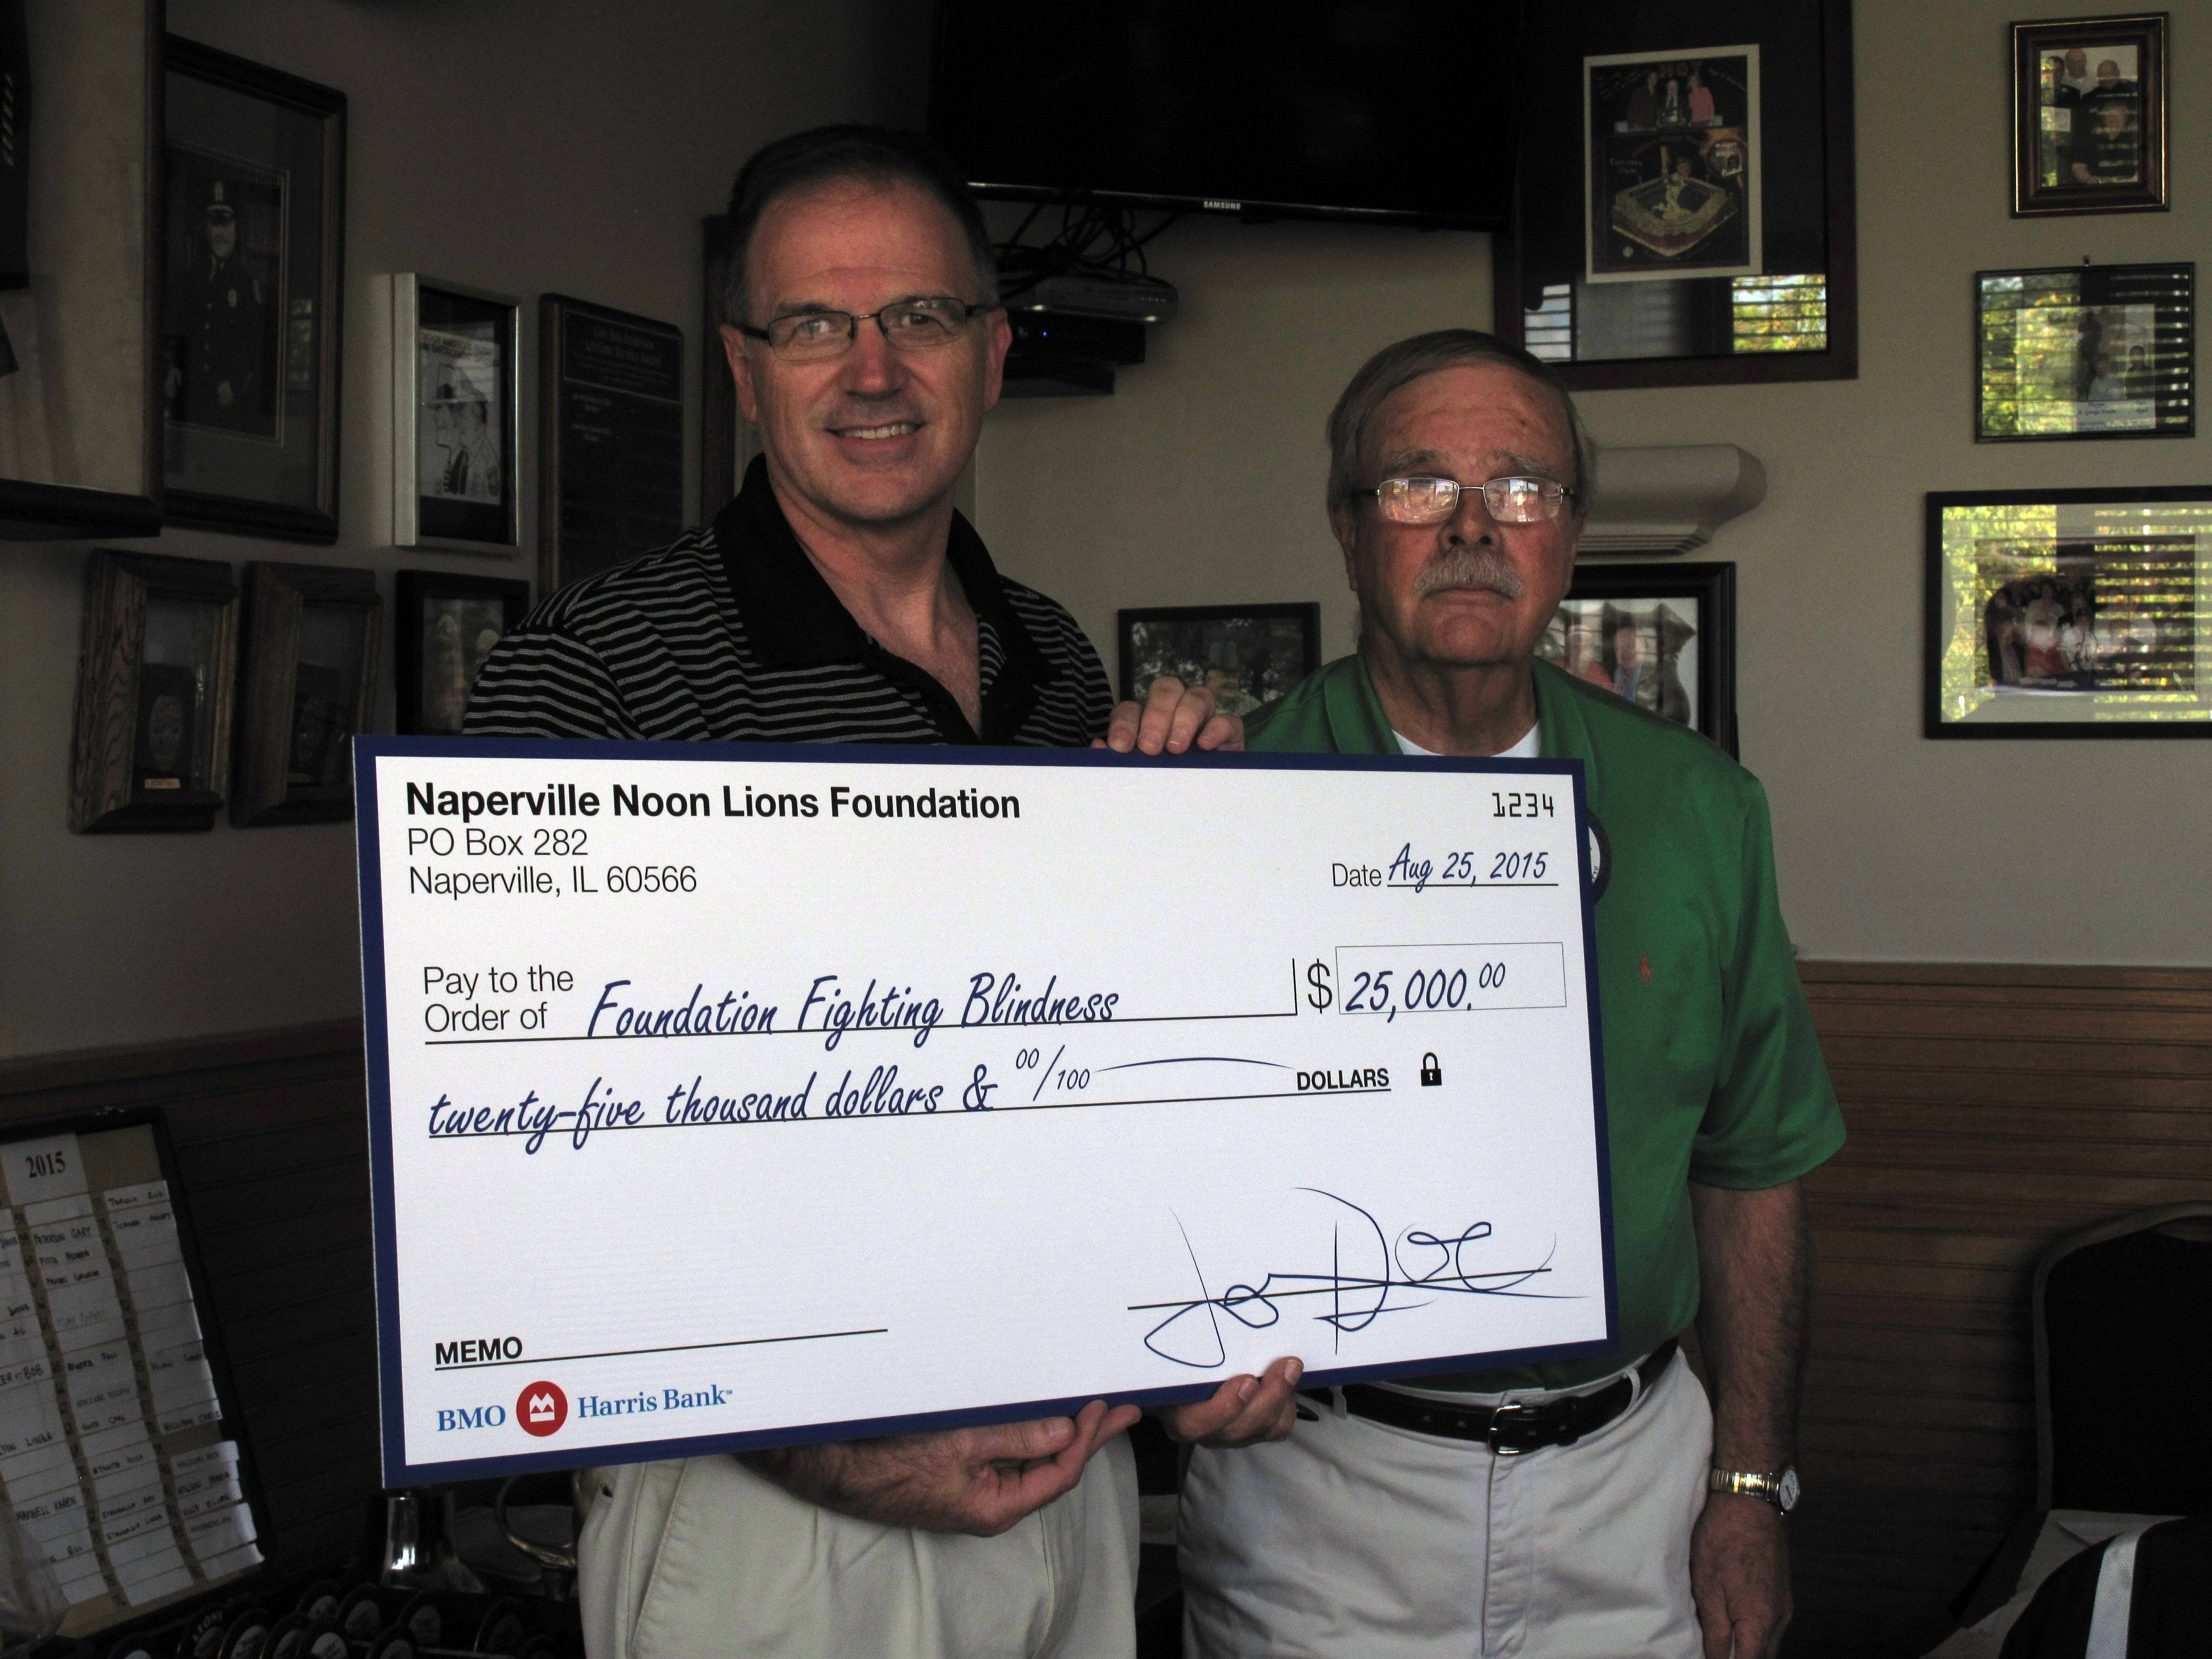 John Cornielle of DeKalb, left, a volunteer with the Foundation Fighting Blindness, receives one of the largest donations the Naperville Noon Lions Club ever has given. At right is Bob Hull, president of the club, which gave $25,000 to support research for a cure to blindness caused by inherited retinal diseases.